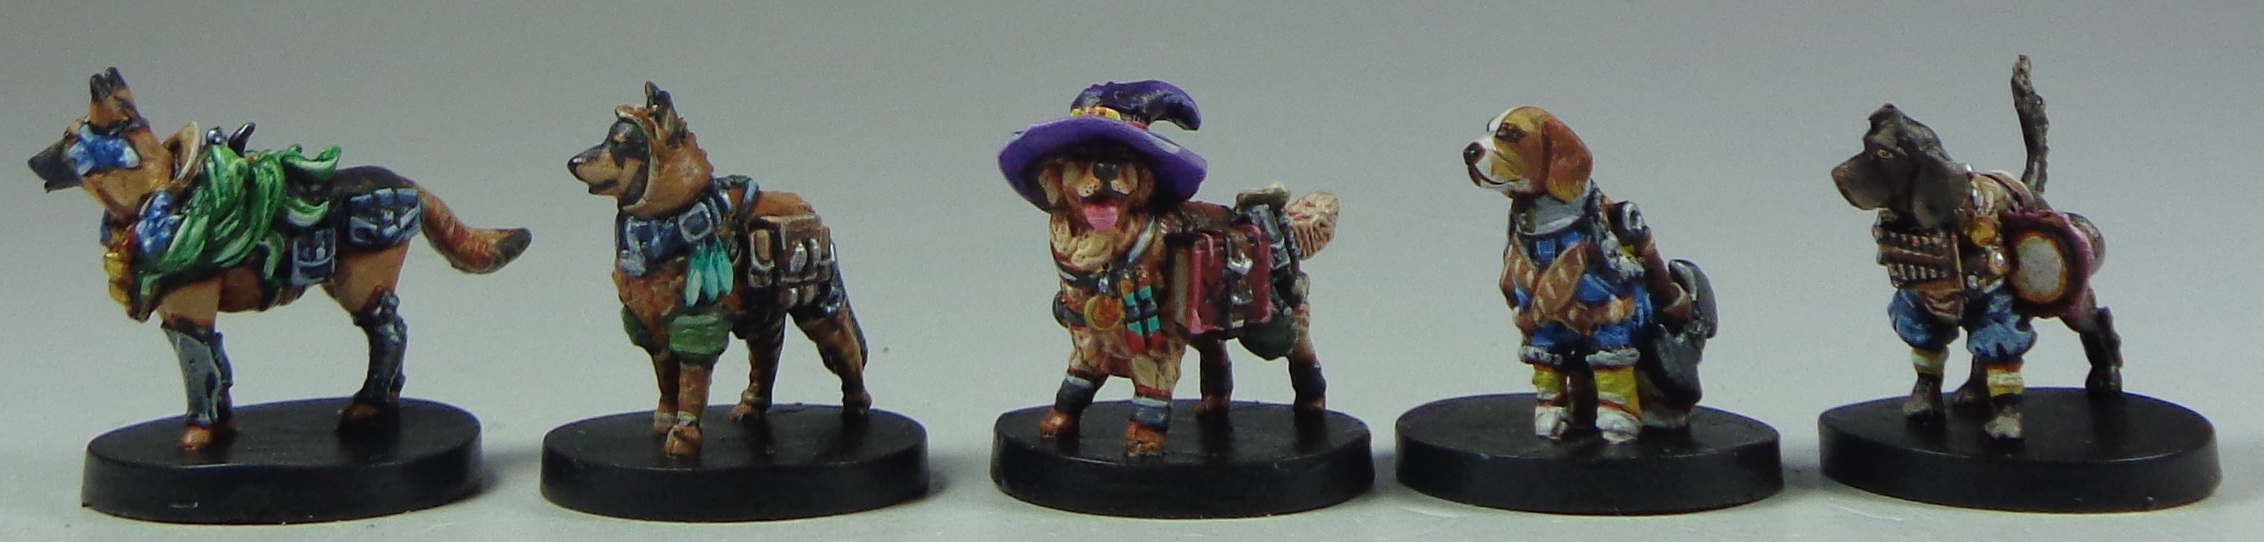 Paintedfigs+Miniature+Painting+Service+KL+Dungeons+%26+Doggies+%285%29.jpg